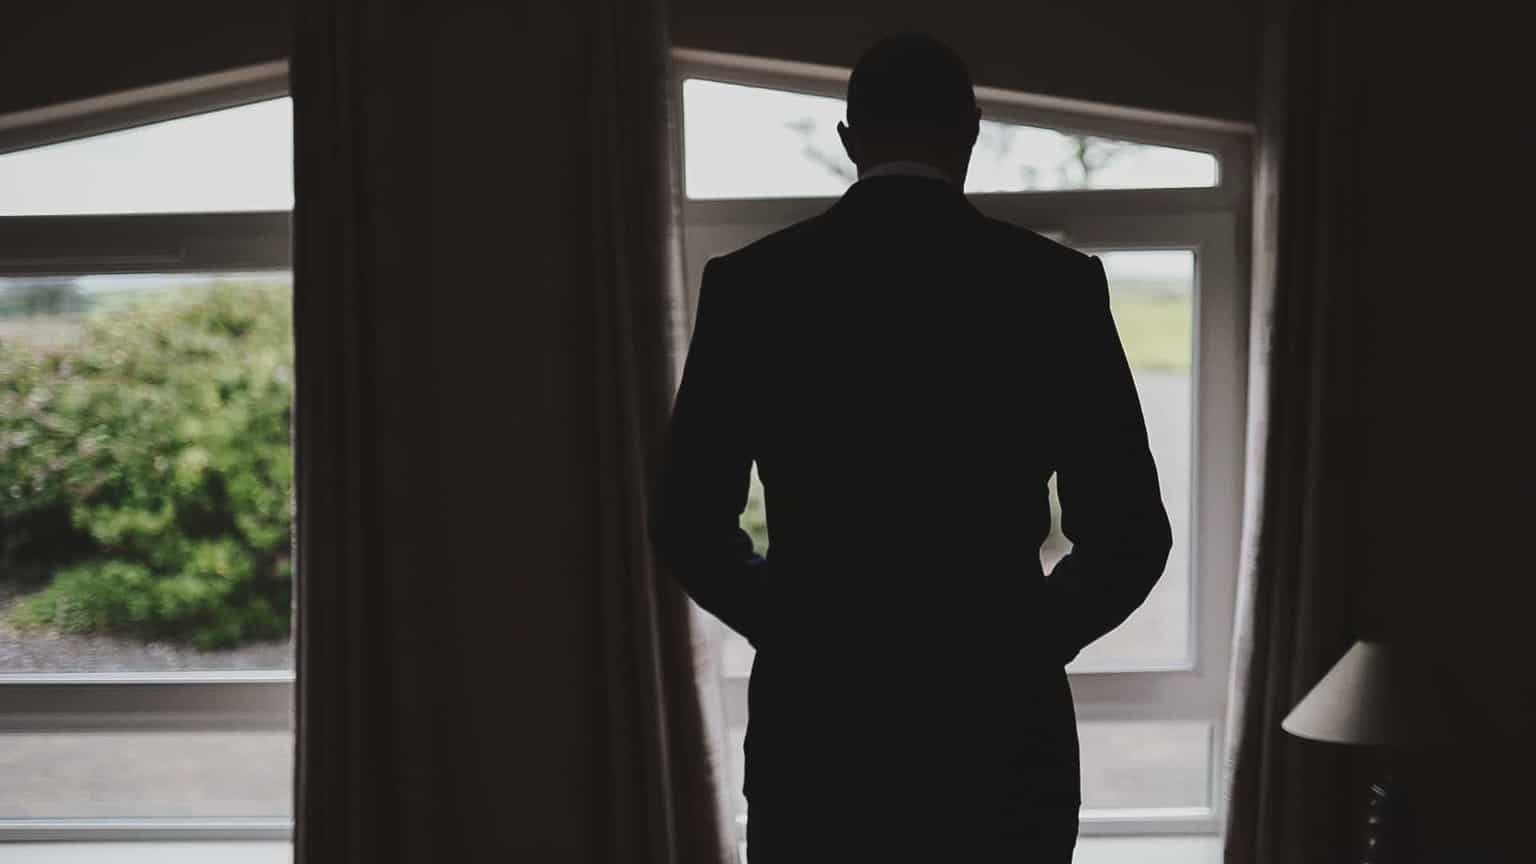 Groom is putting suit and looking outside widow.